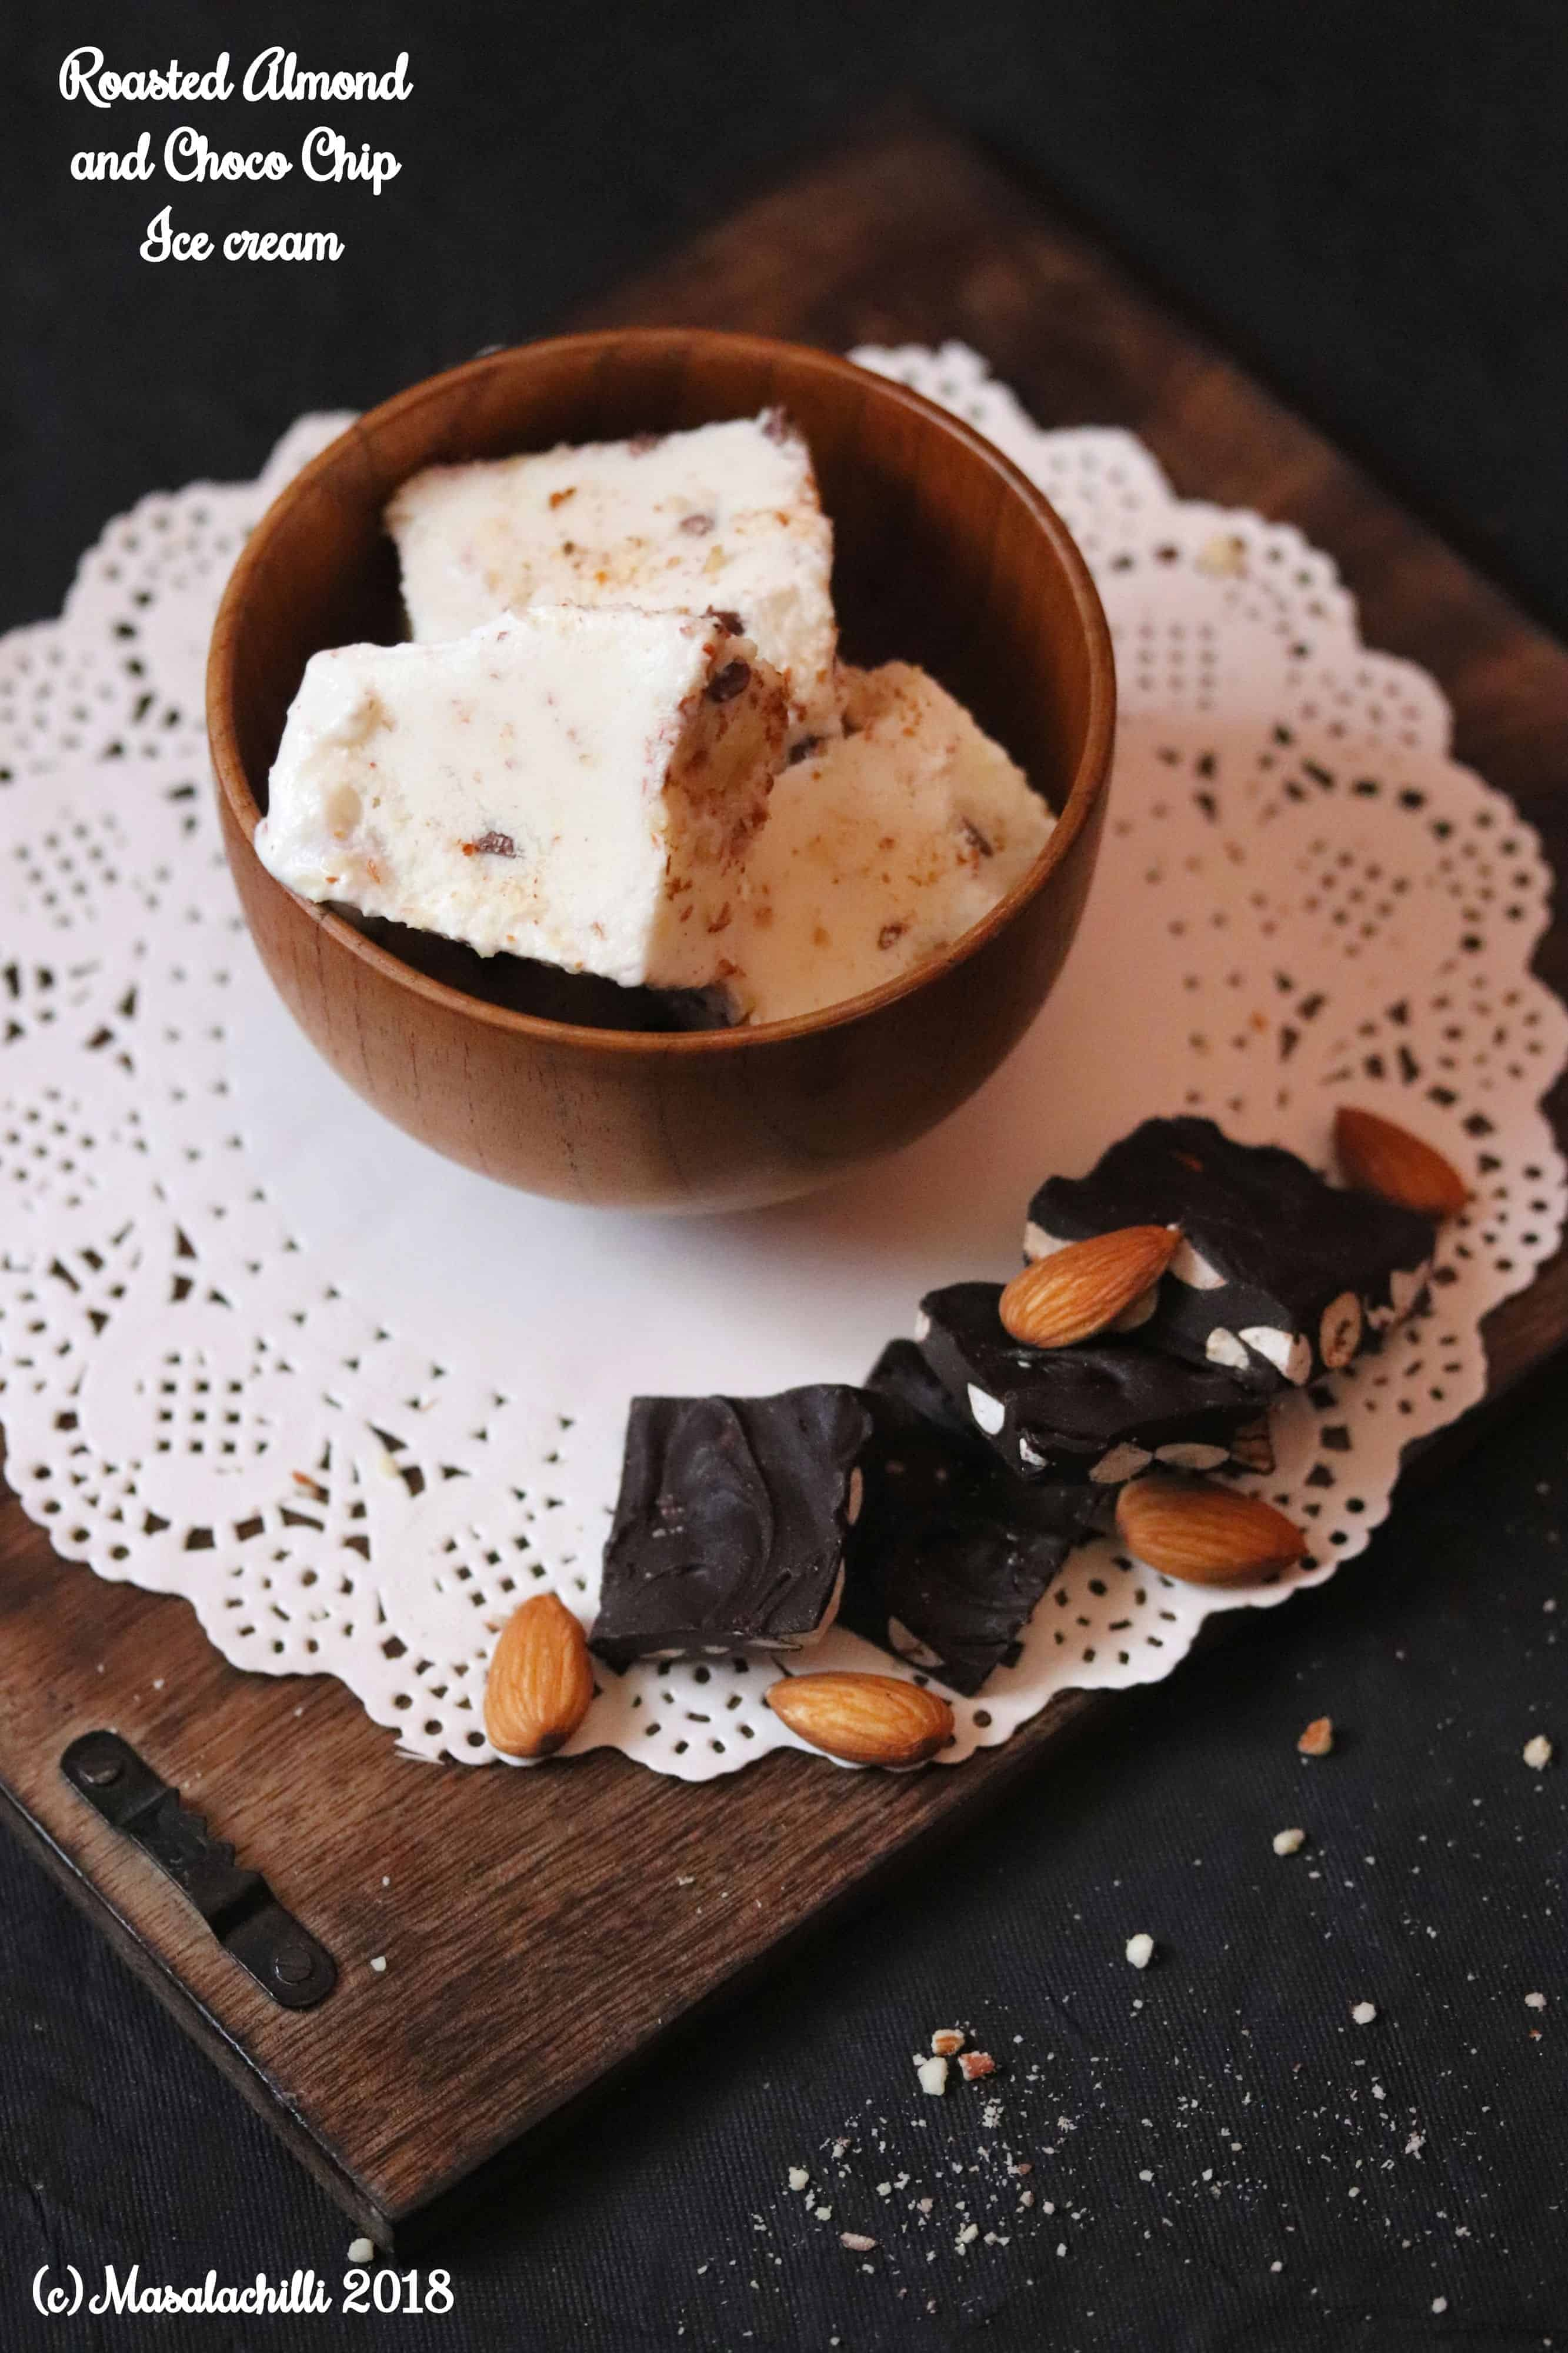 Roasted Almond and Choco Chip Ice cream